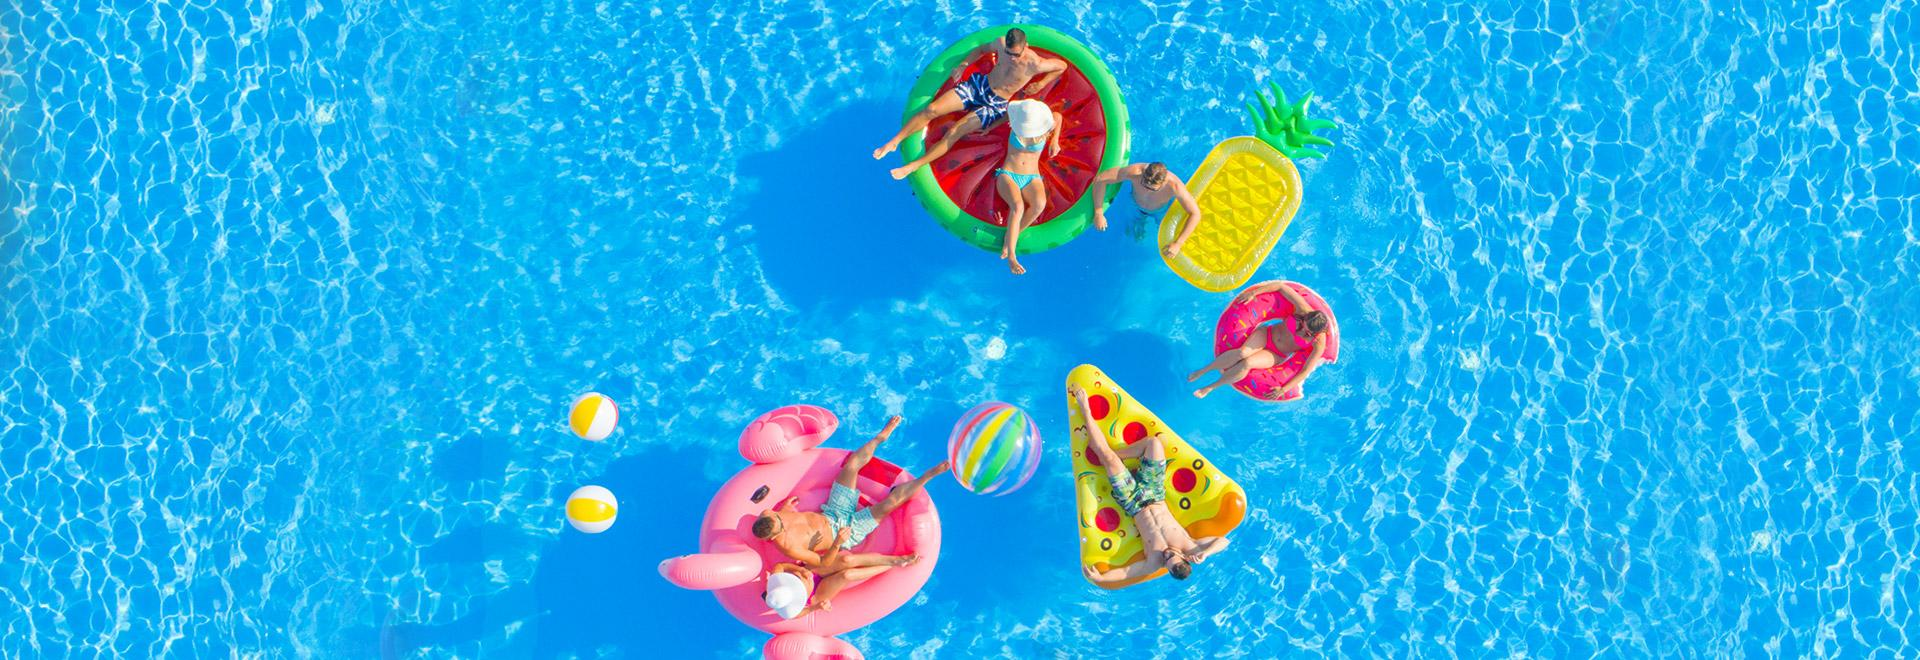 A group of friend enjoy floats in the pool